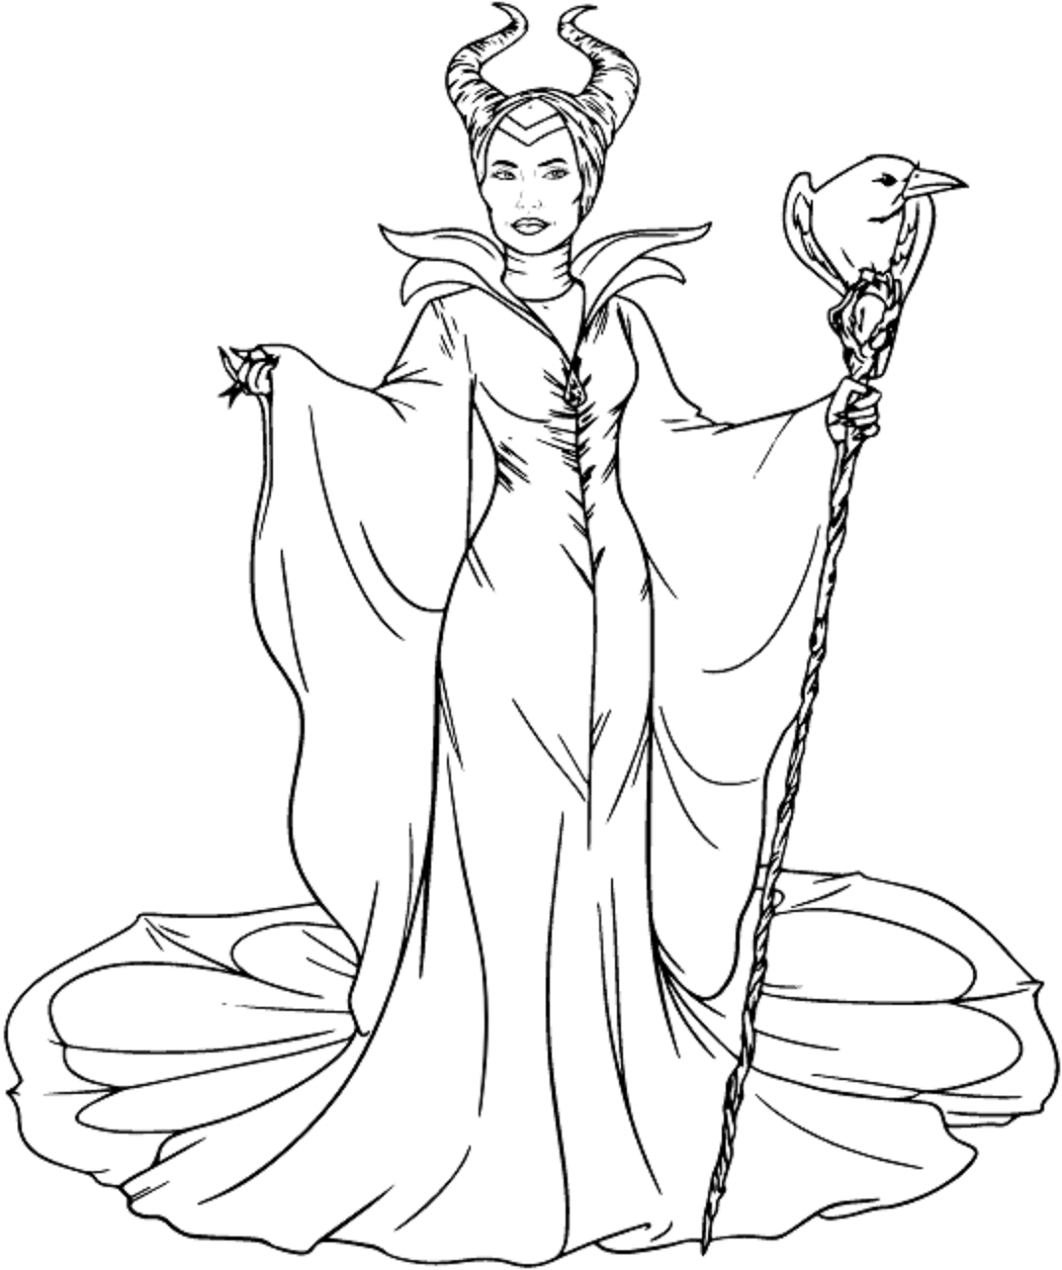 Maleficent Coloring Pages Free Printable Coloring Pages For Kids